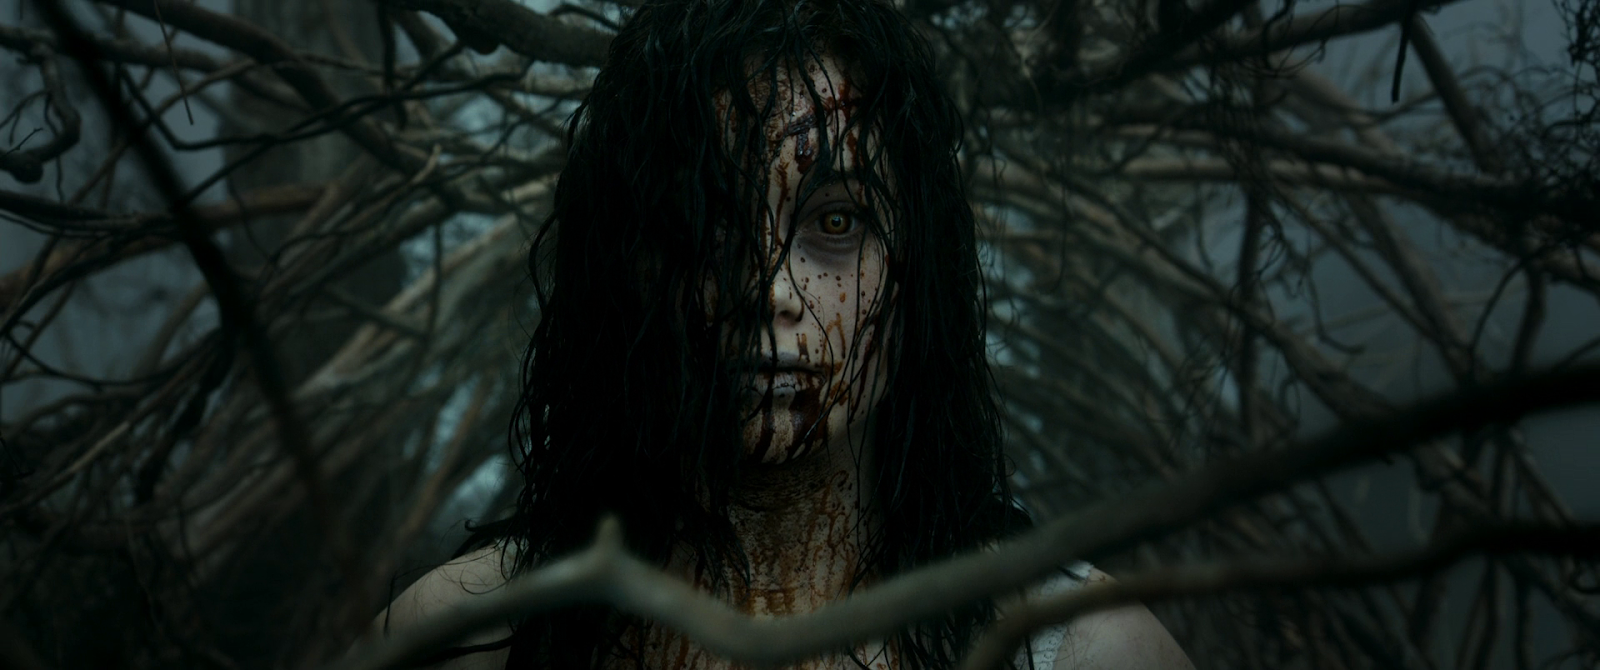 Evil Dead (2013) | The Ordinary Review